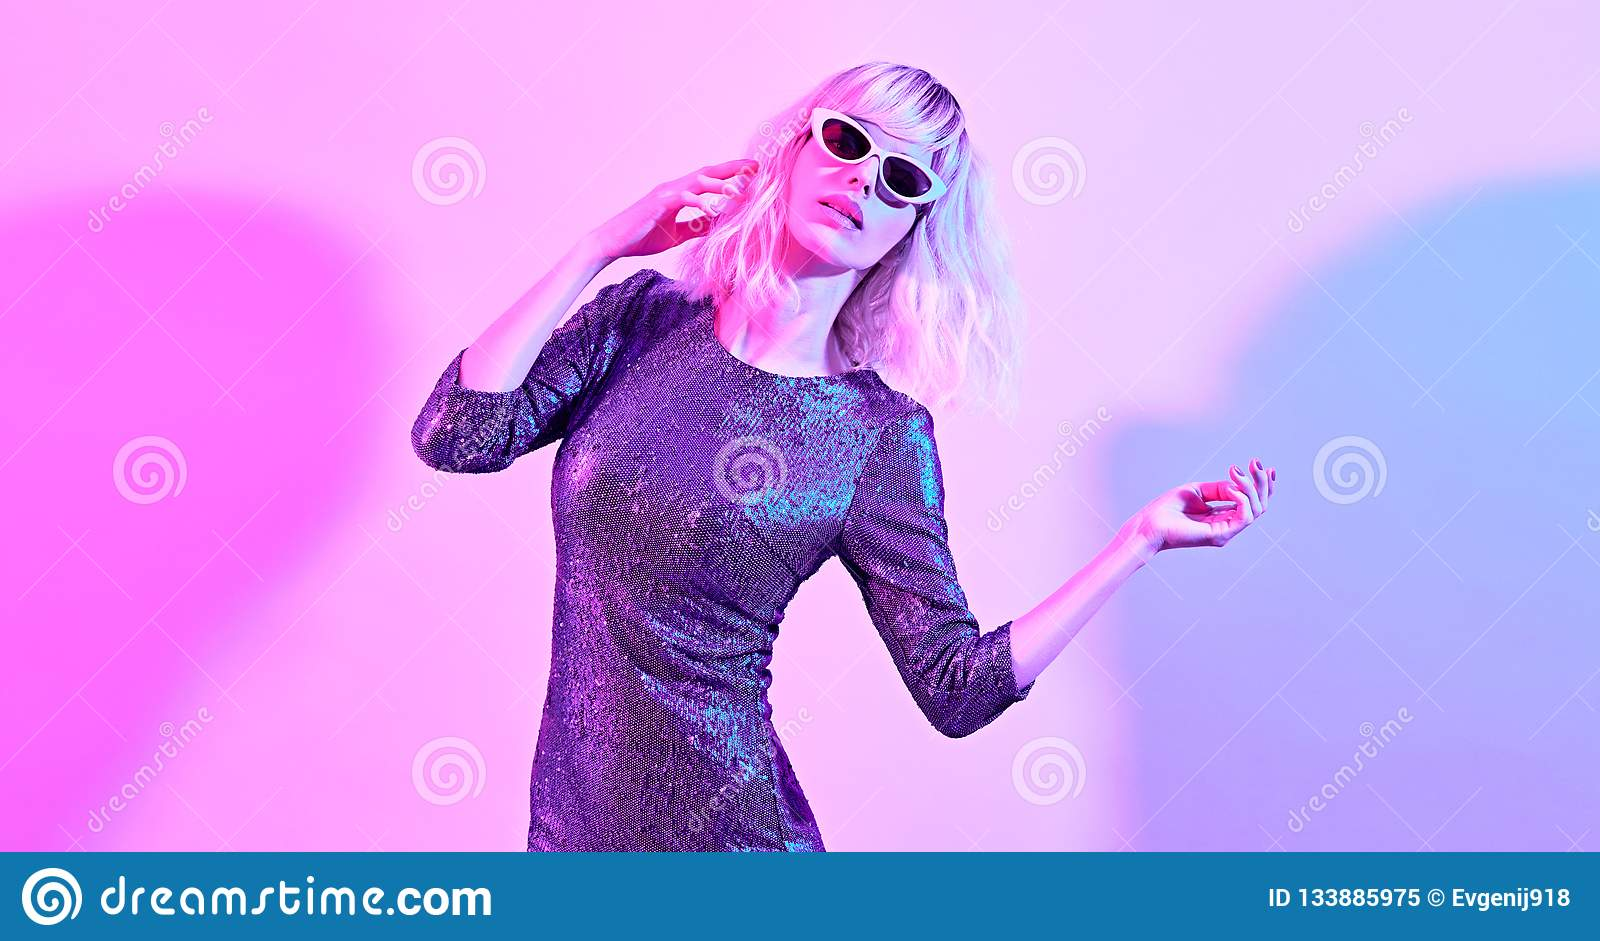 a996de1f Glamour Disco Girl with Blonde Hair dance in Trendy Sequin Dress,  Sunglasses. Creative woman Portrait. Contemporary style